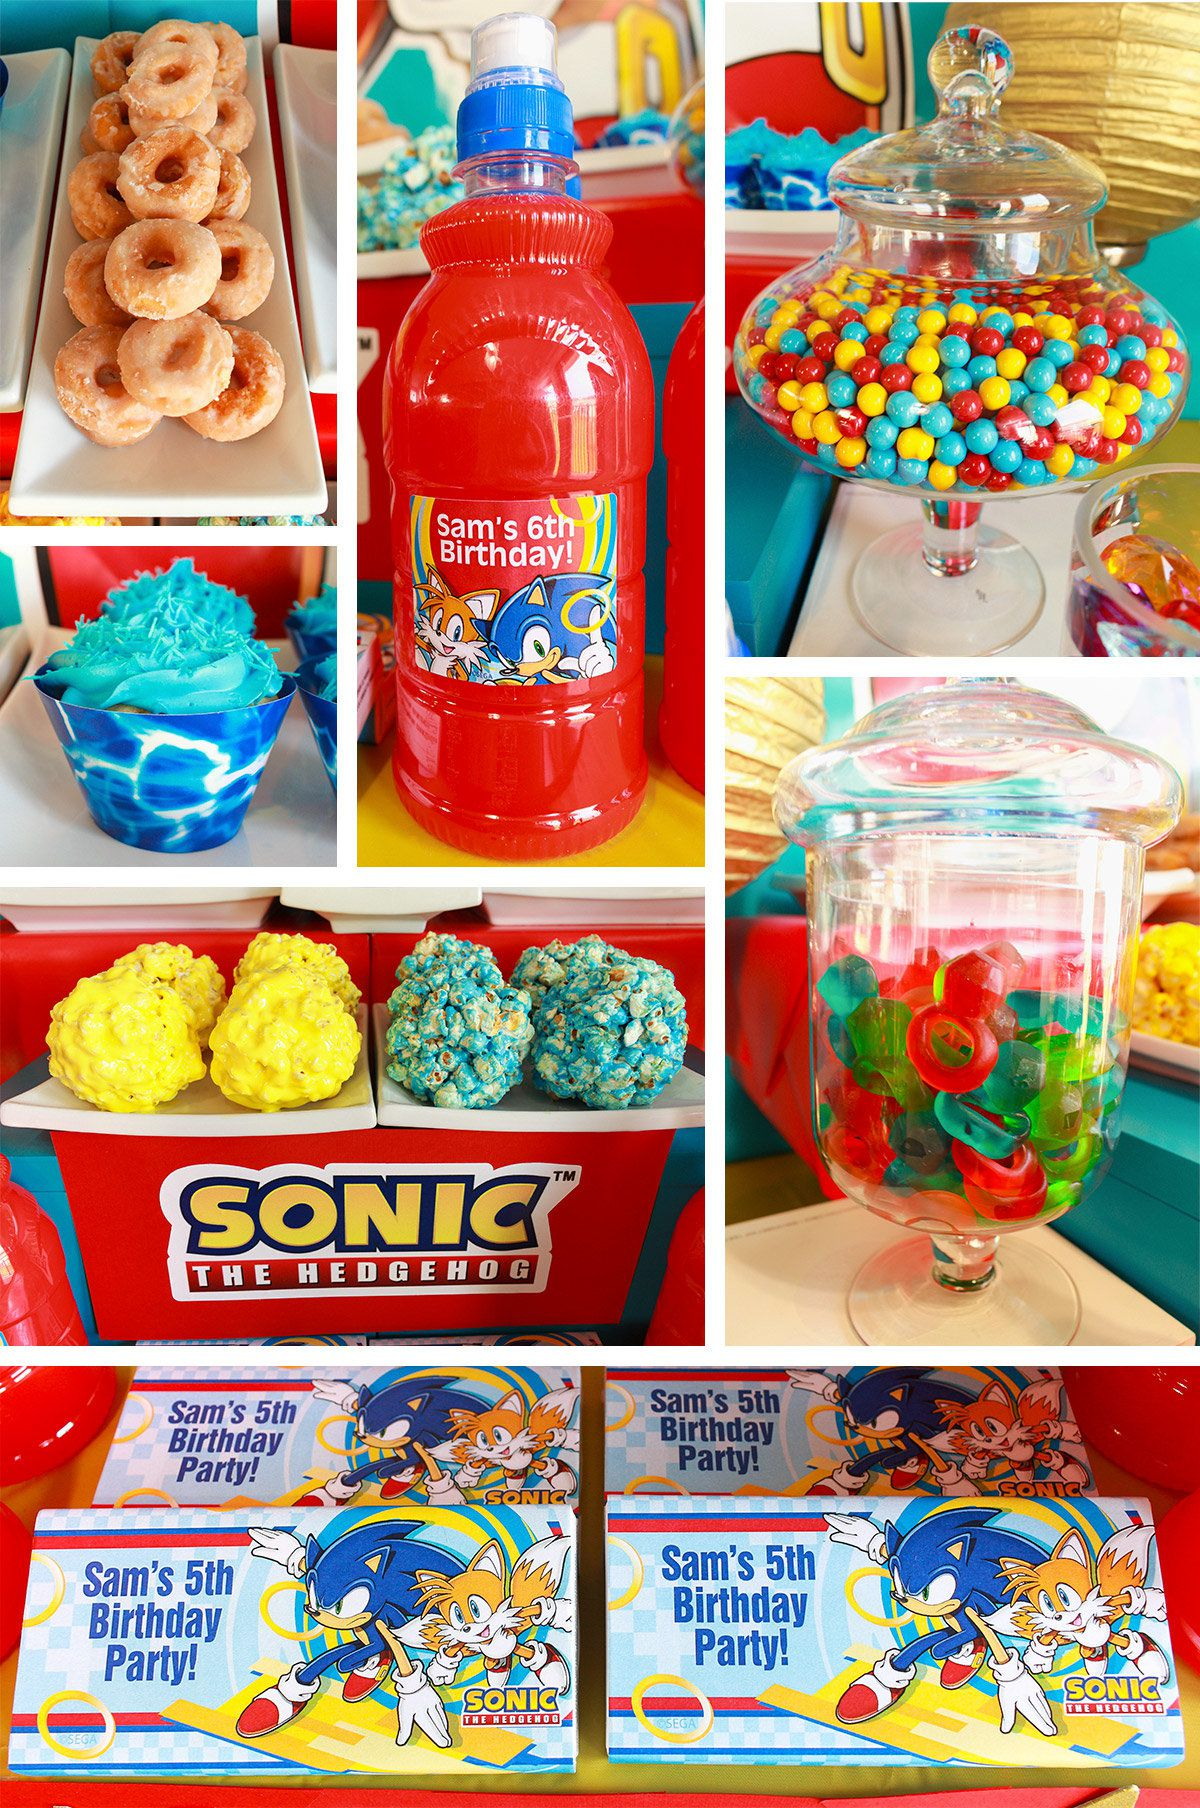 Sonic the Hedgehog Party - Food Ideas